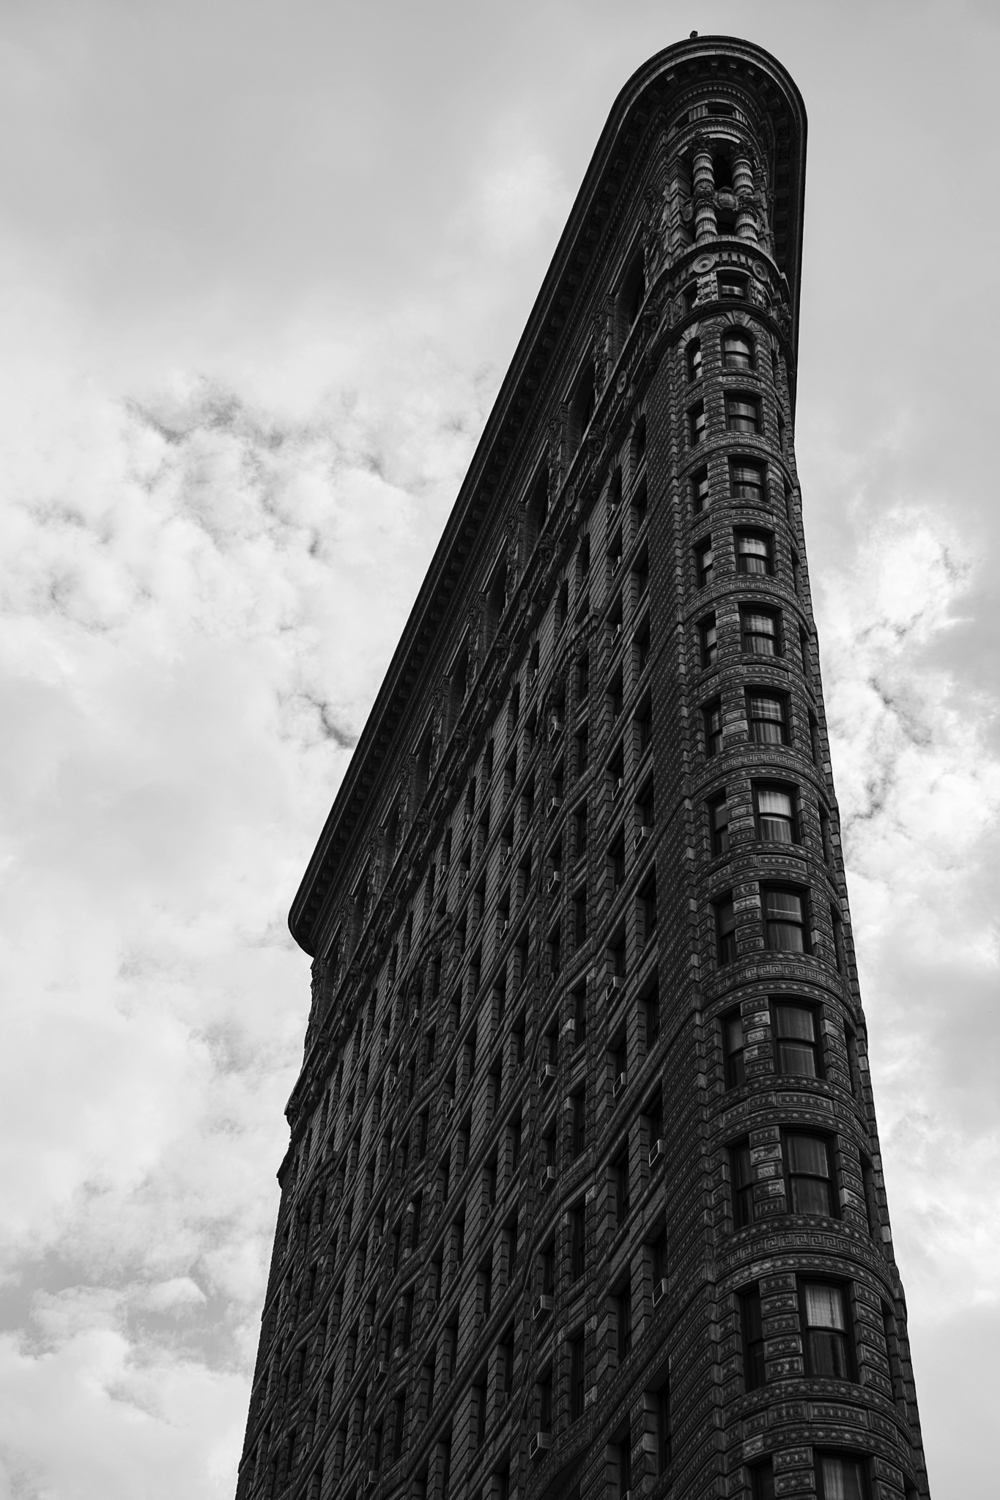 Flatiron Building, July 2014.